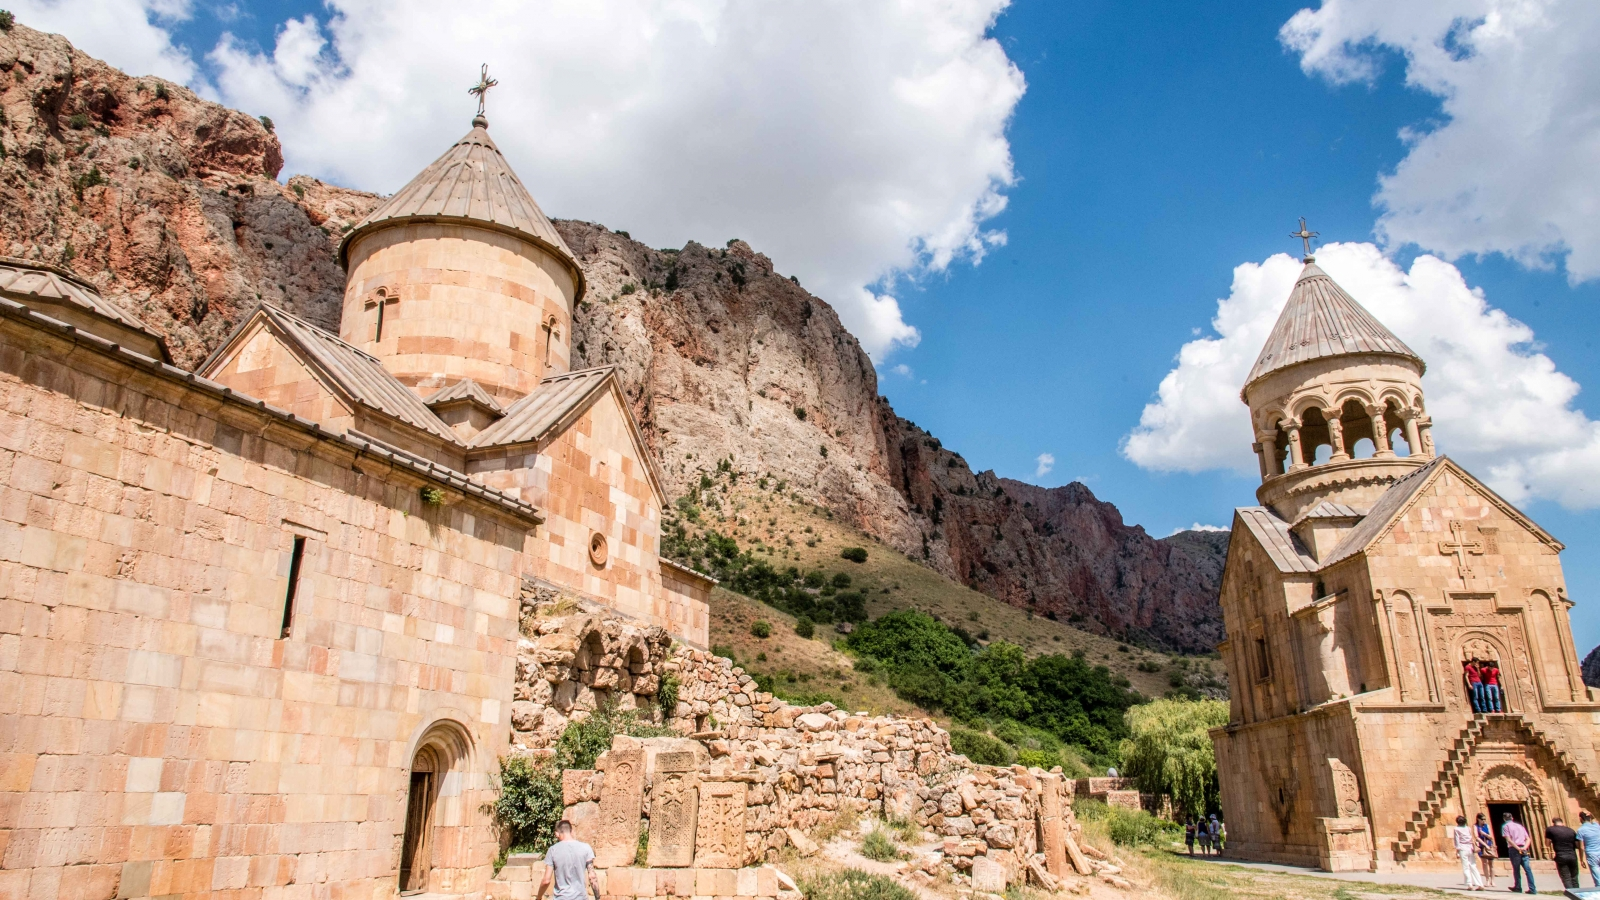 The project kicked off in 2013 at Noravank monastery